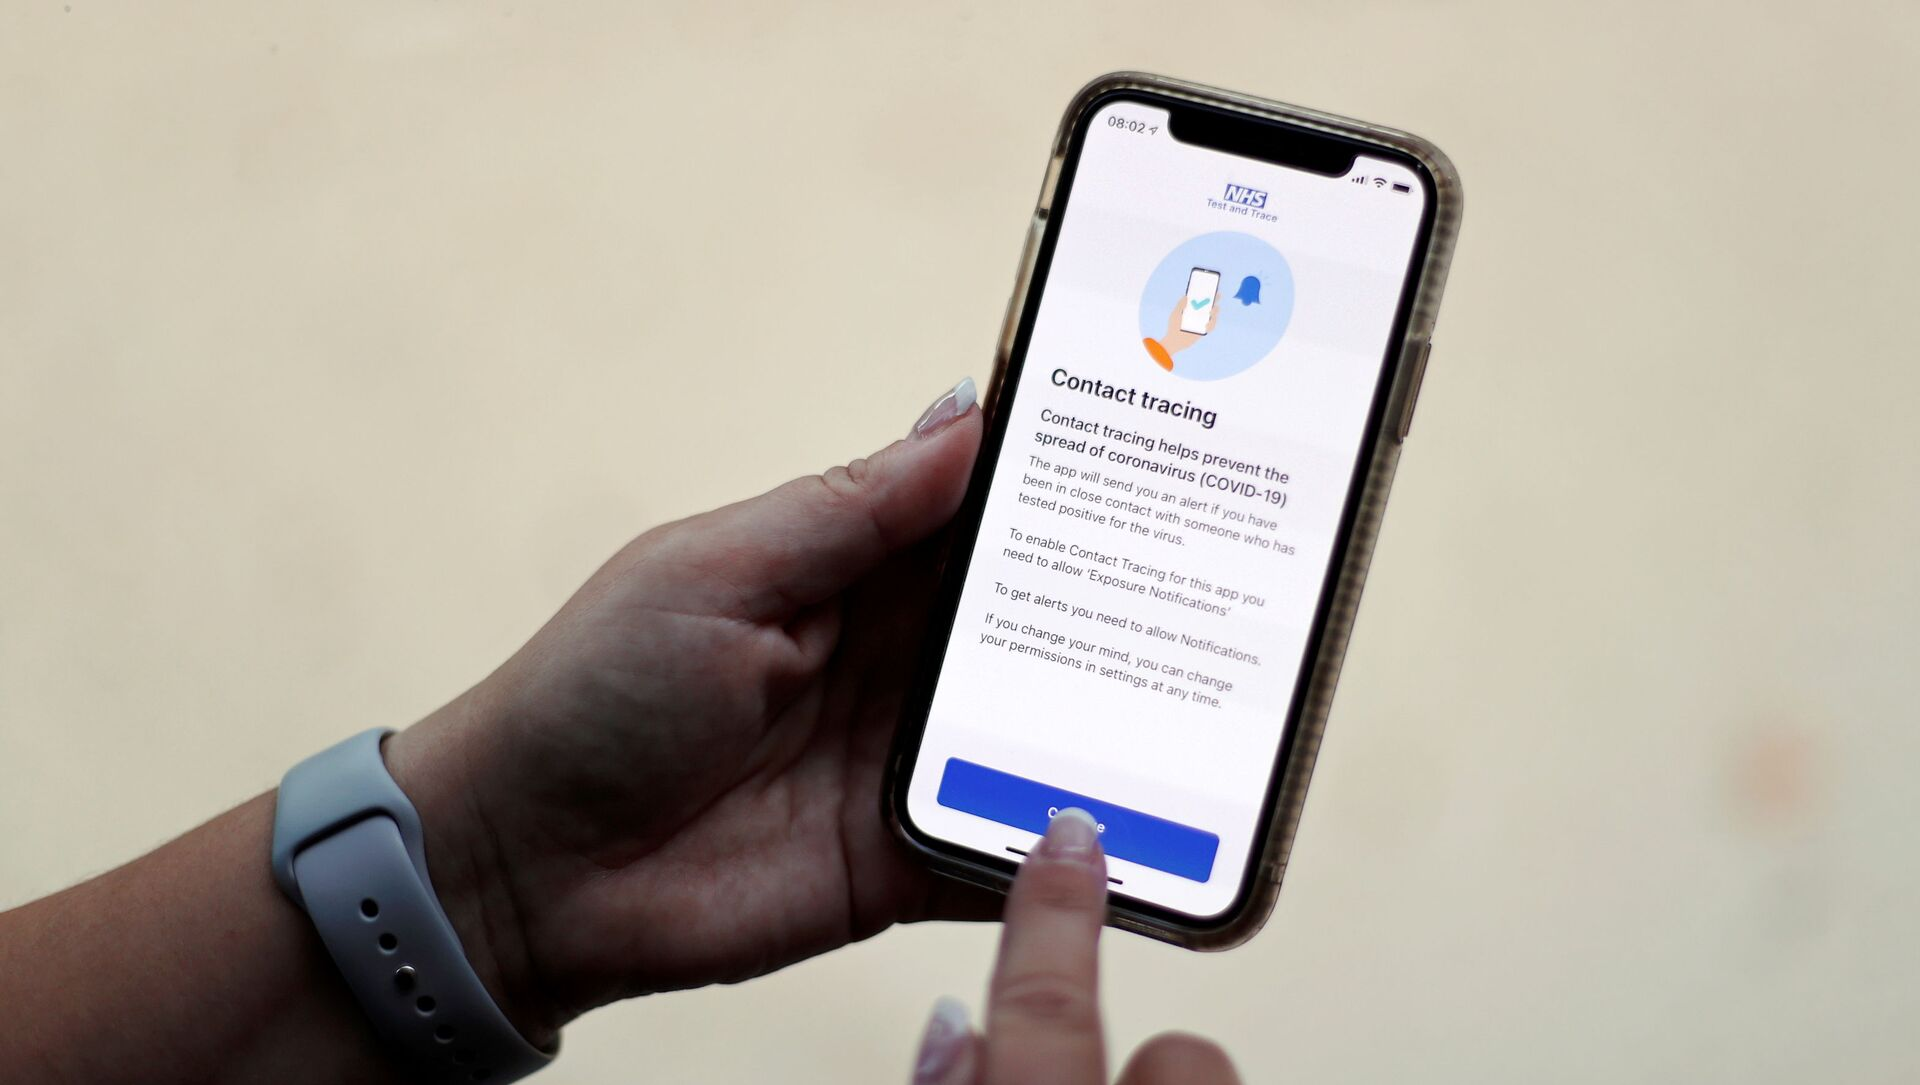 FILE PHOTO: The coronavirus disease (COVID-19) contact tracing smartphone app of Britain's National Health Service (NHS) is displayed on an iPhone in this illustration photograph taken in Keele, Britain, September 24, 2020.  - Sputnik International, 1920, 23.07.2021